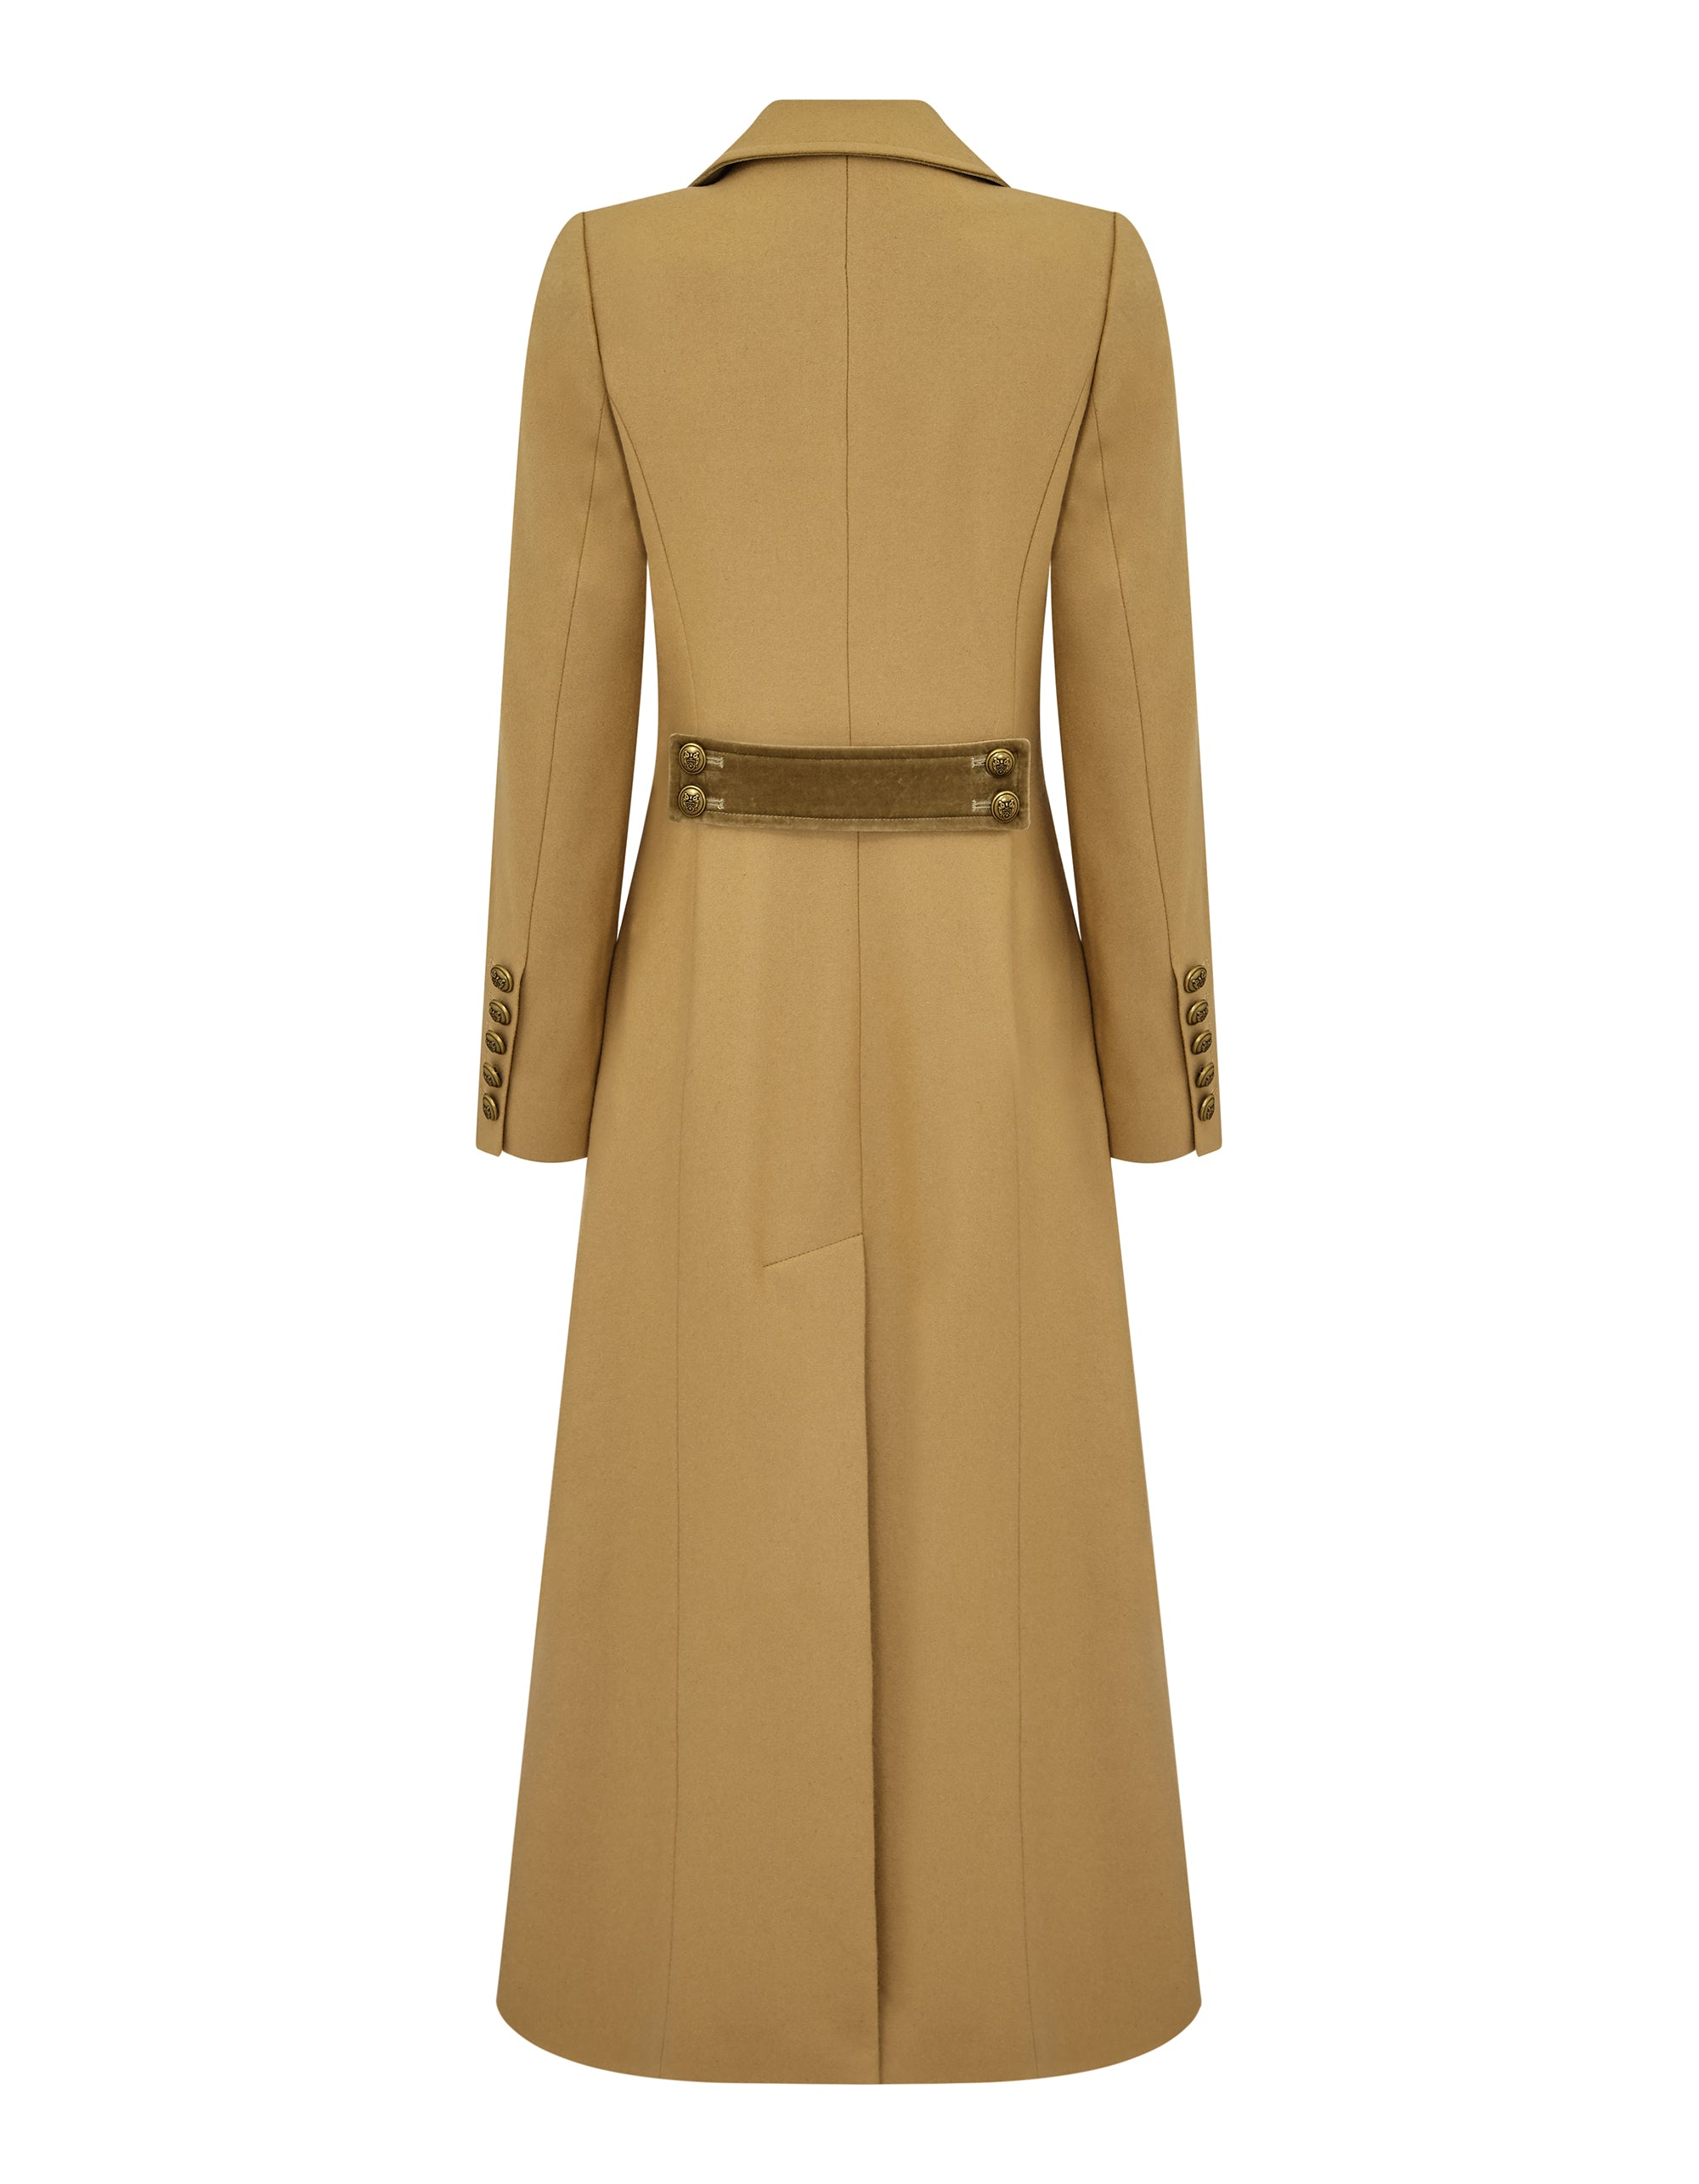 Guinea Long Trench Coat for Ladies in Camel Melton